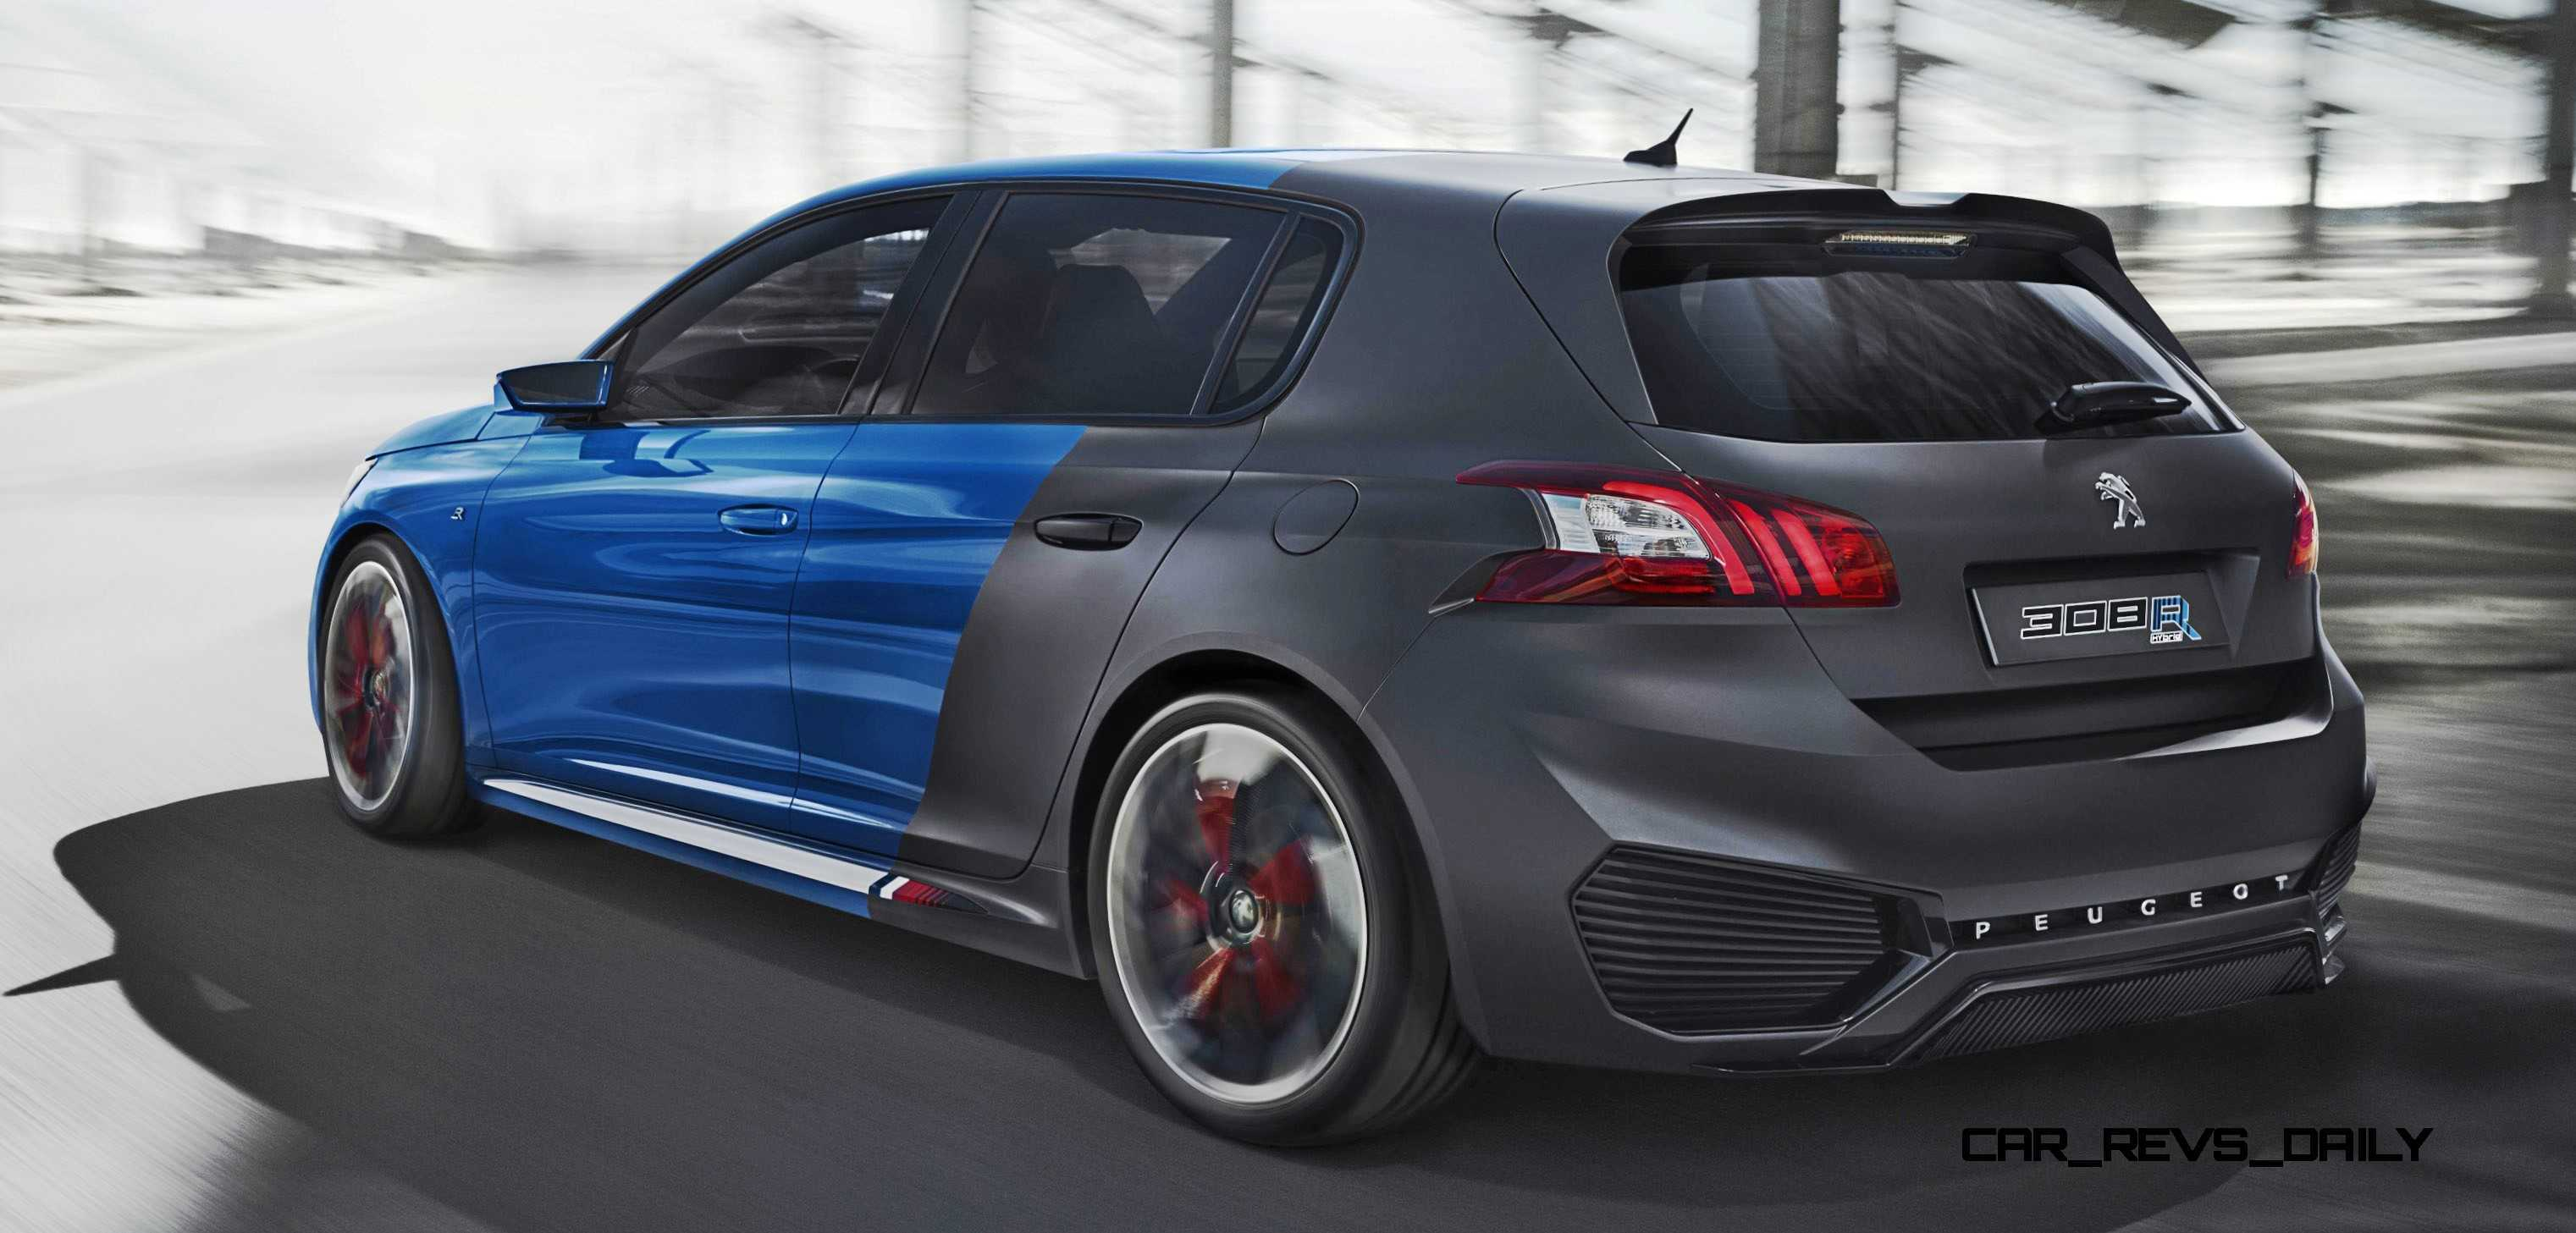 This is the 500bhp Peugeot Quartz